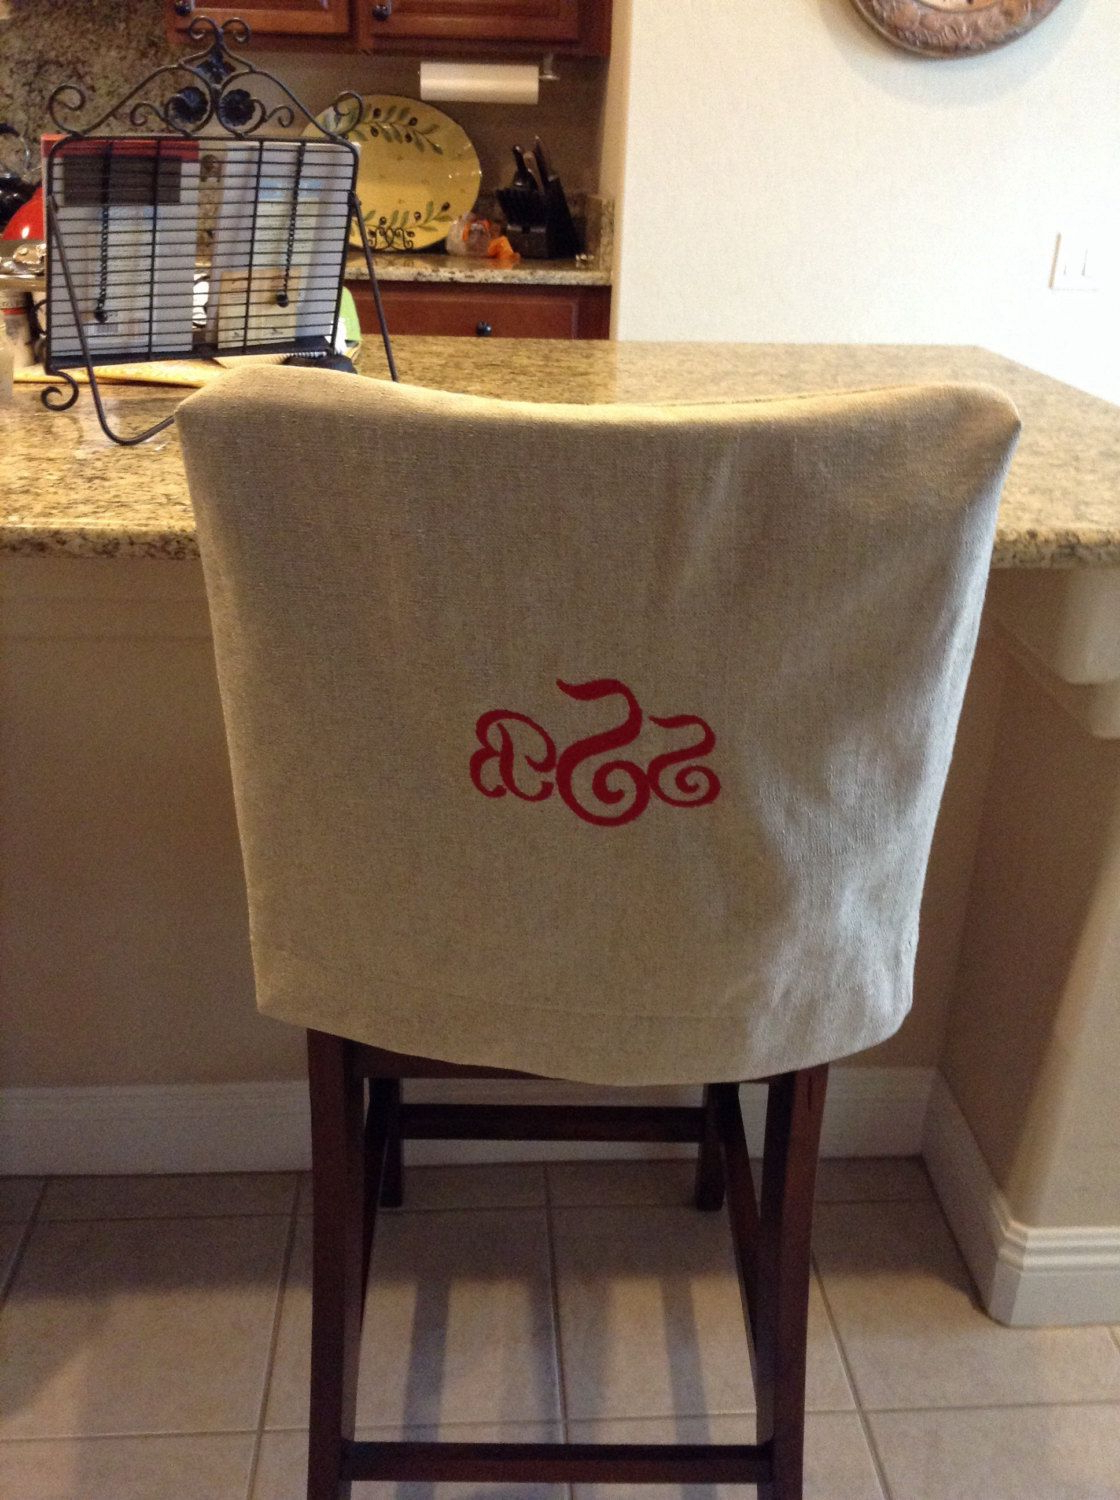 Most Popular Covers For Sofas And Chairs Intended For Monogrammed Chair Back Cover (View 15 of 20)